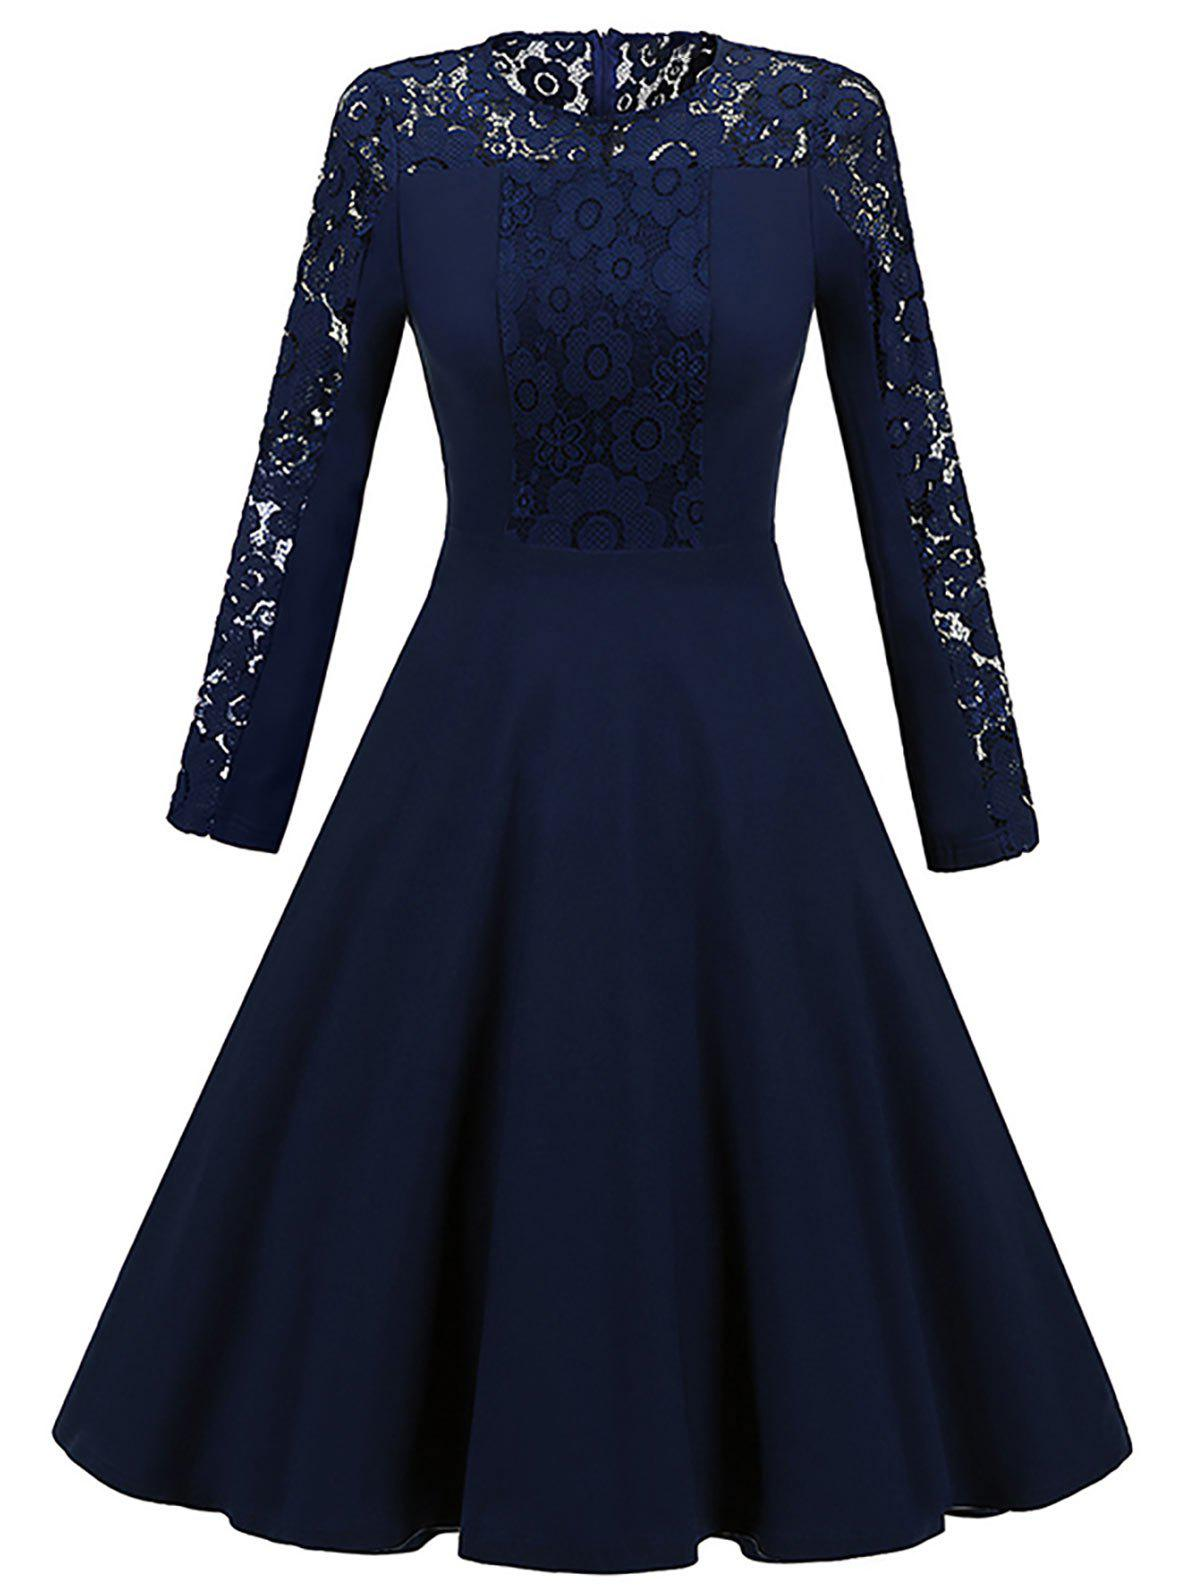 Long Sleeve Lace Insert Vintage Skater DressWOMEN<br><br>Size: XL; Color: PURPLISH BLUE; Style: Vintage; Material: Polyester; Silhouette: A-Line; Dresses Length: Knee-Length; Neckline: Round Collar; Sleeve Length: Long Sleeves; Pattern Type: Patchwork,Solid; With Belt: No; Season: Fall,Spring; Weight: 0.4200kg; Package Contents: 1 x Dress;